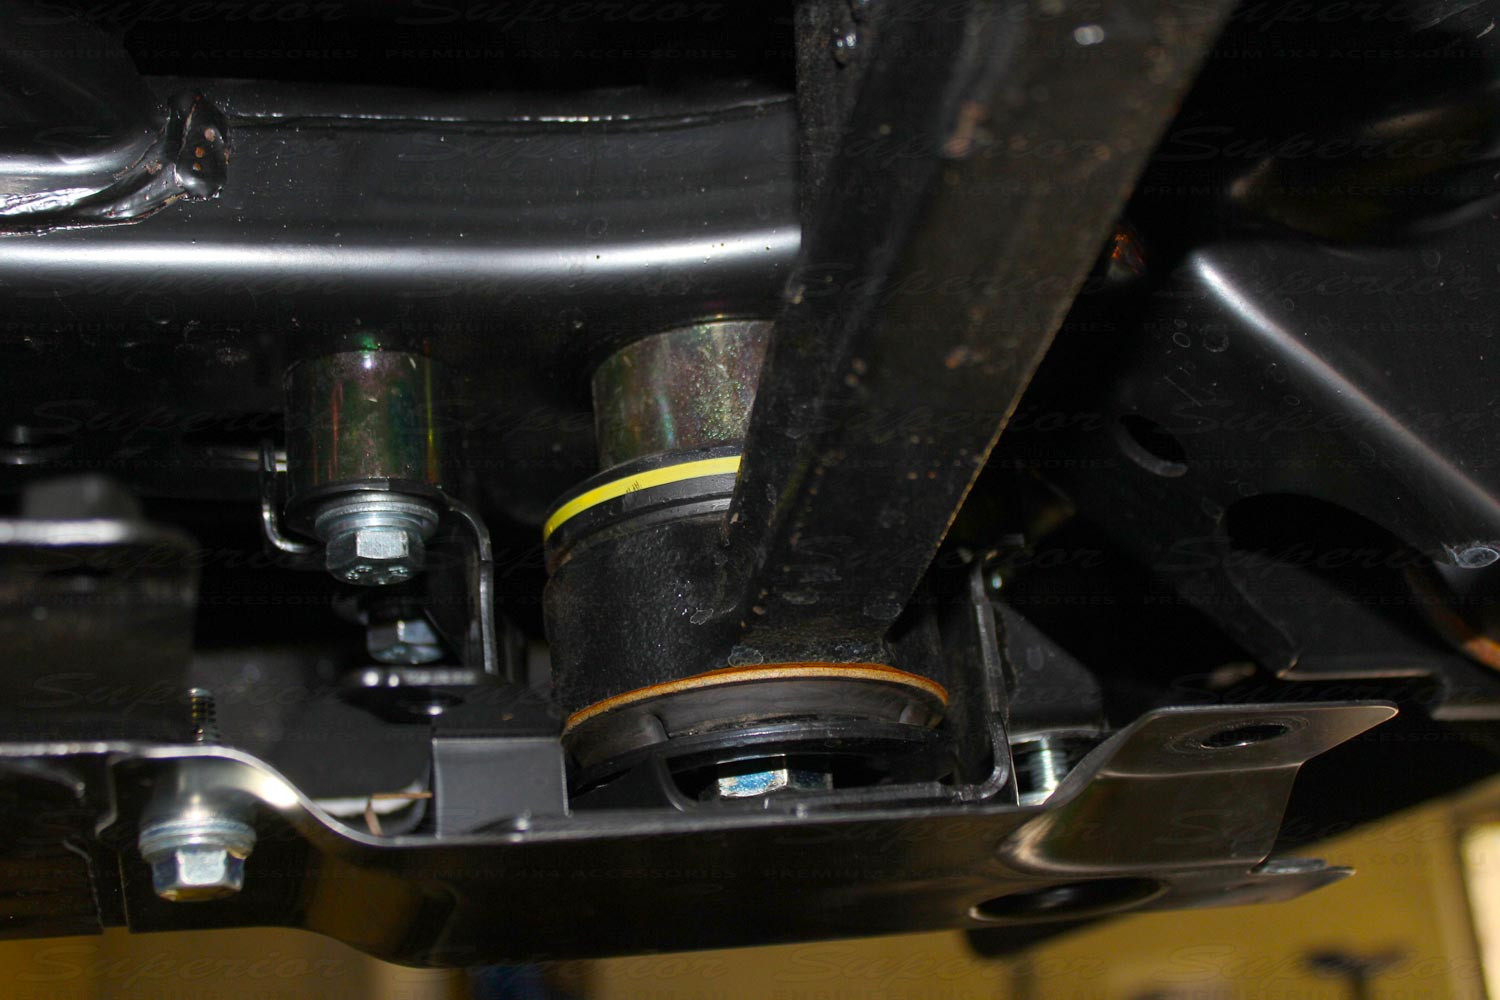 Superior Diff Drop spacers fitted to the 200 Series Landcruiser